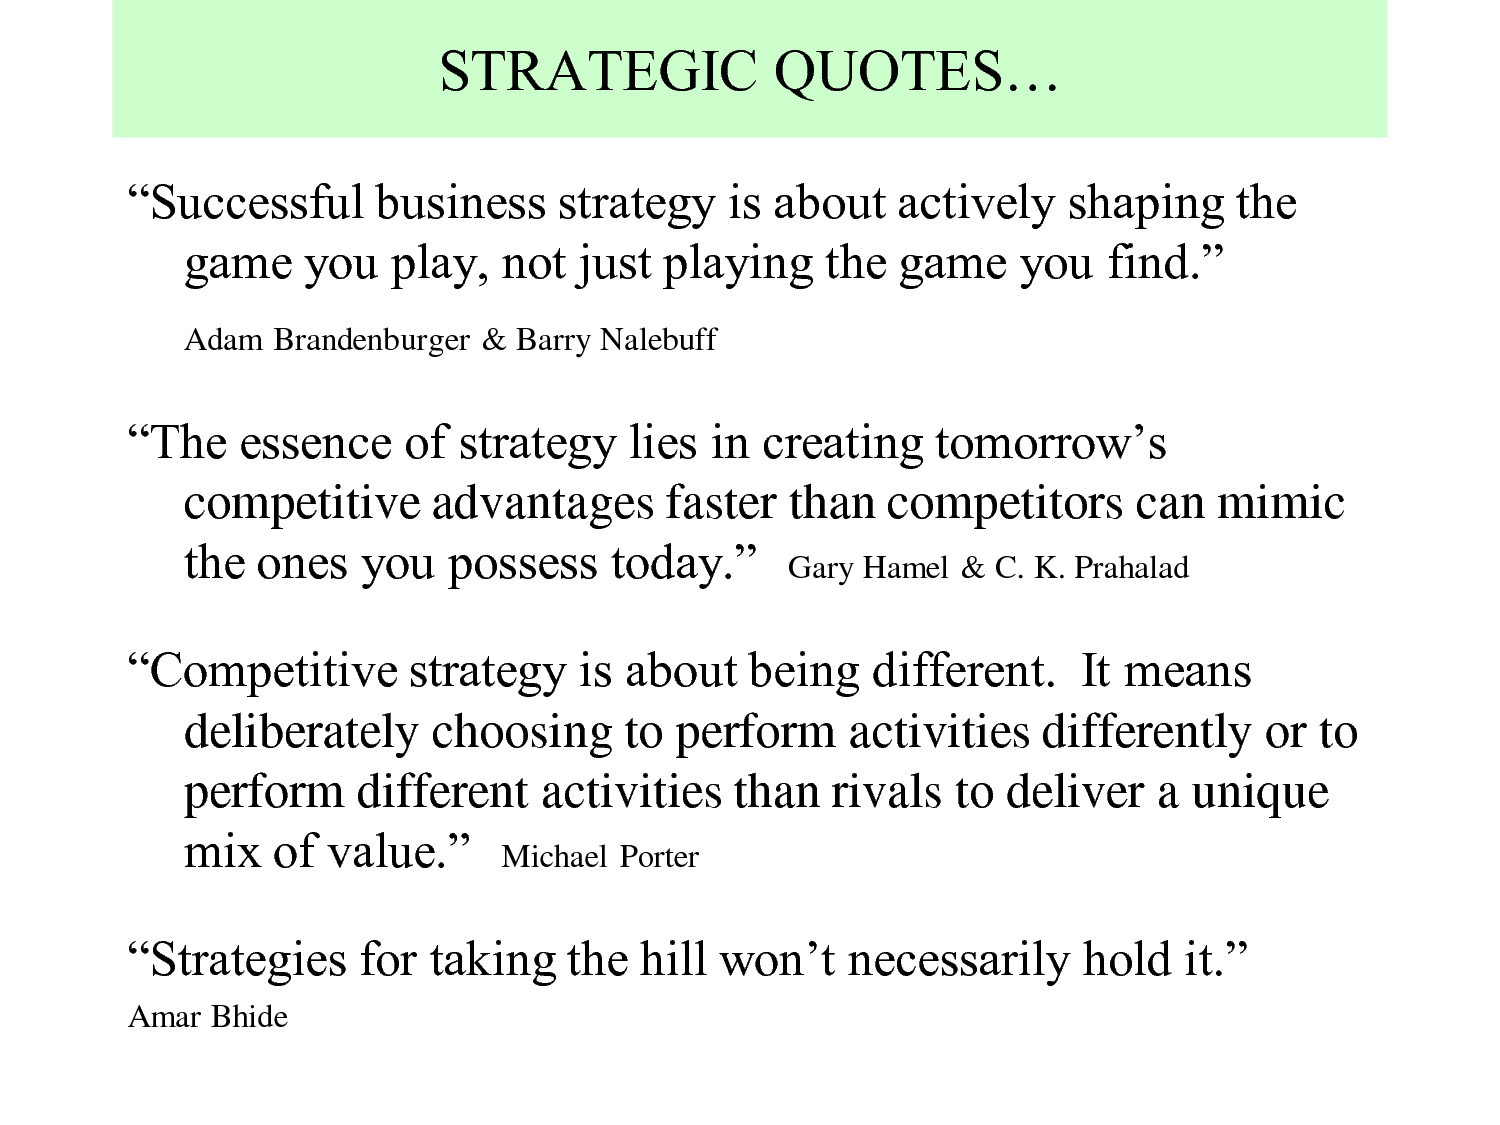 Strategy quote #4